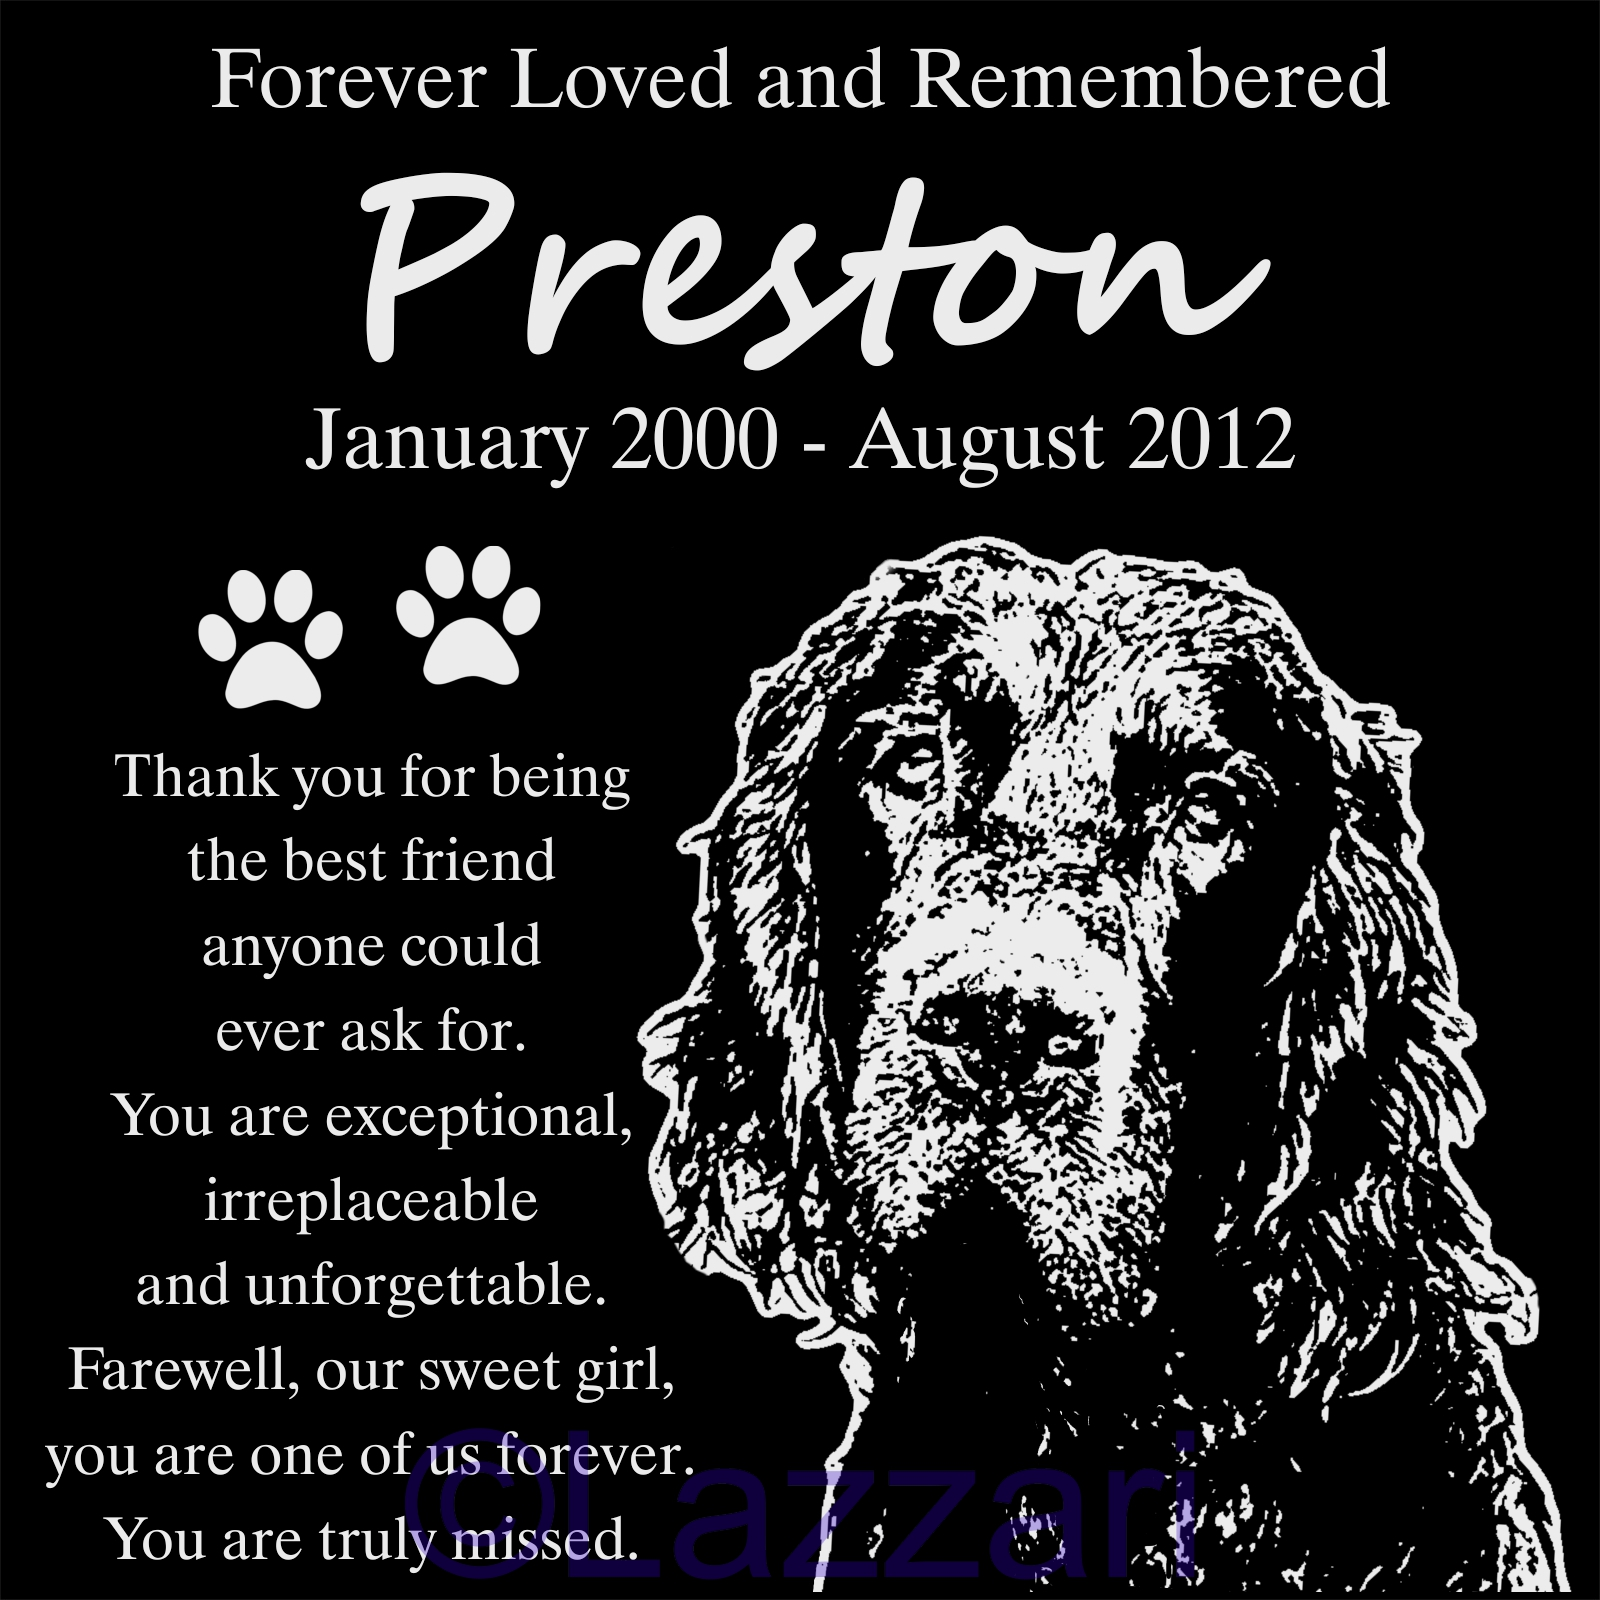 Details About Personalized Gordon Setter Dog Pet Memorial 12x12 Granite Grave Marker Headstone